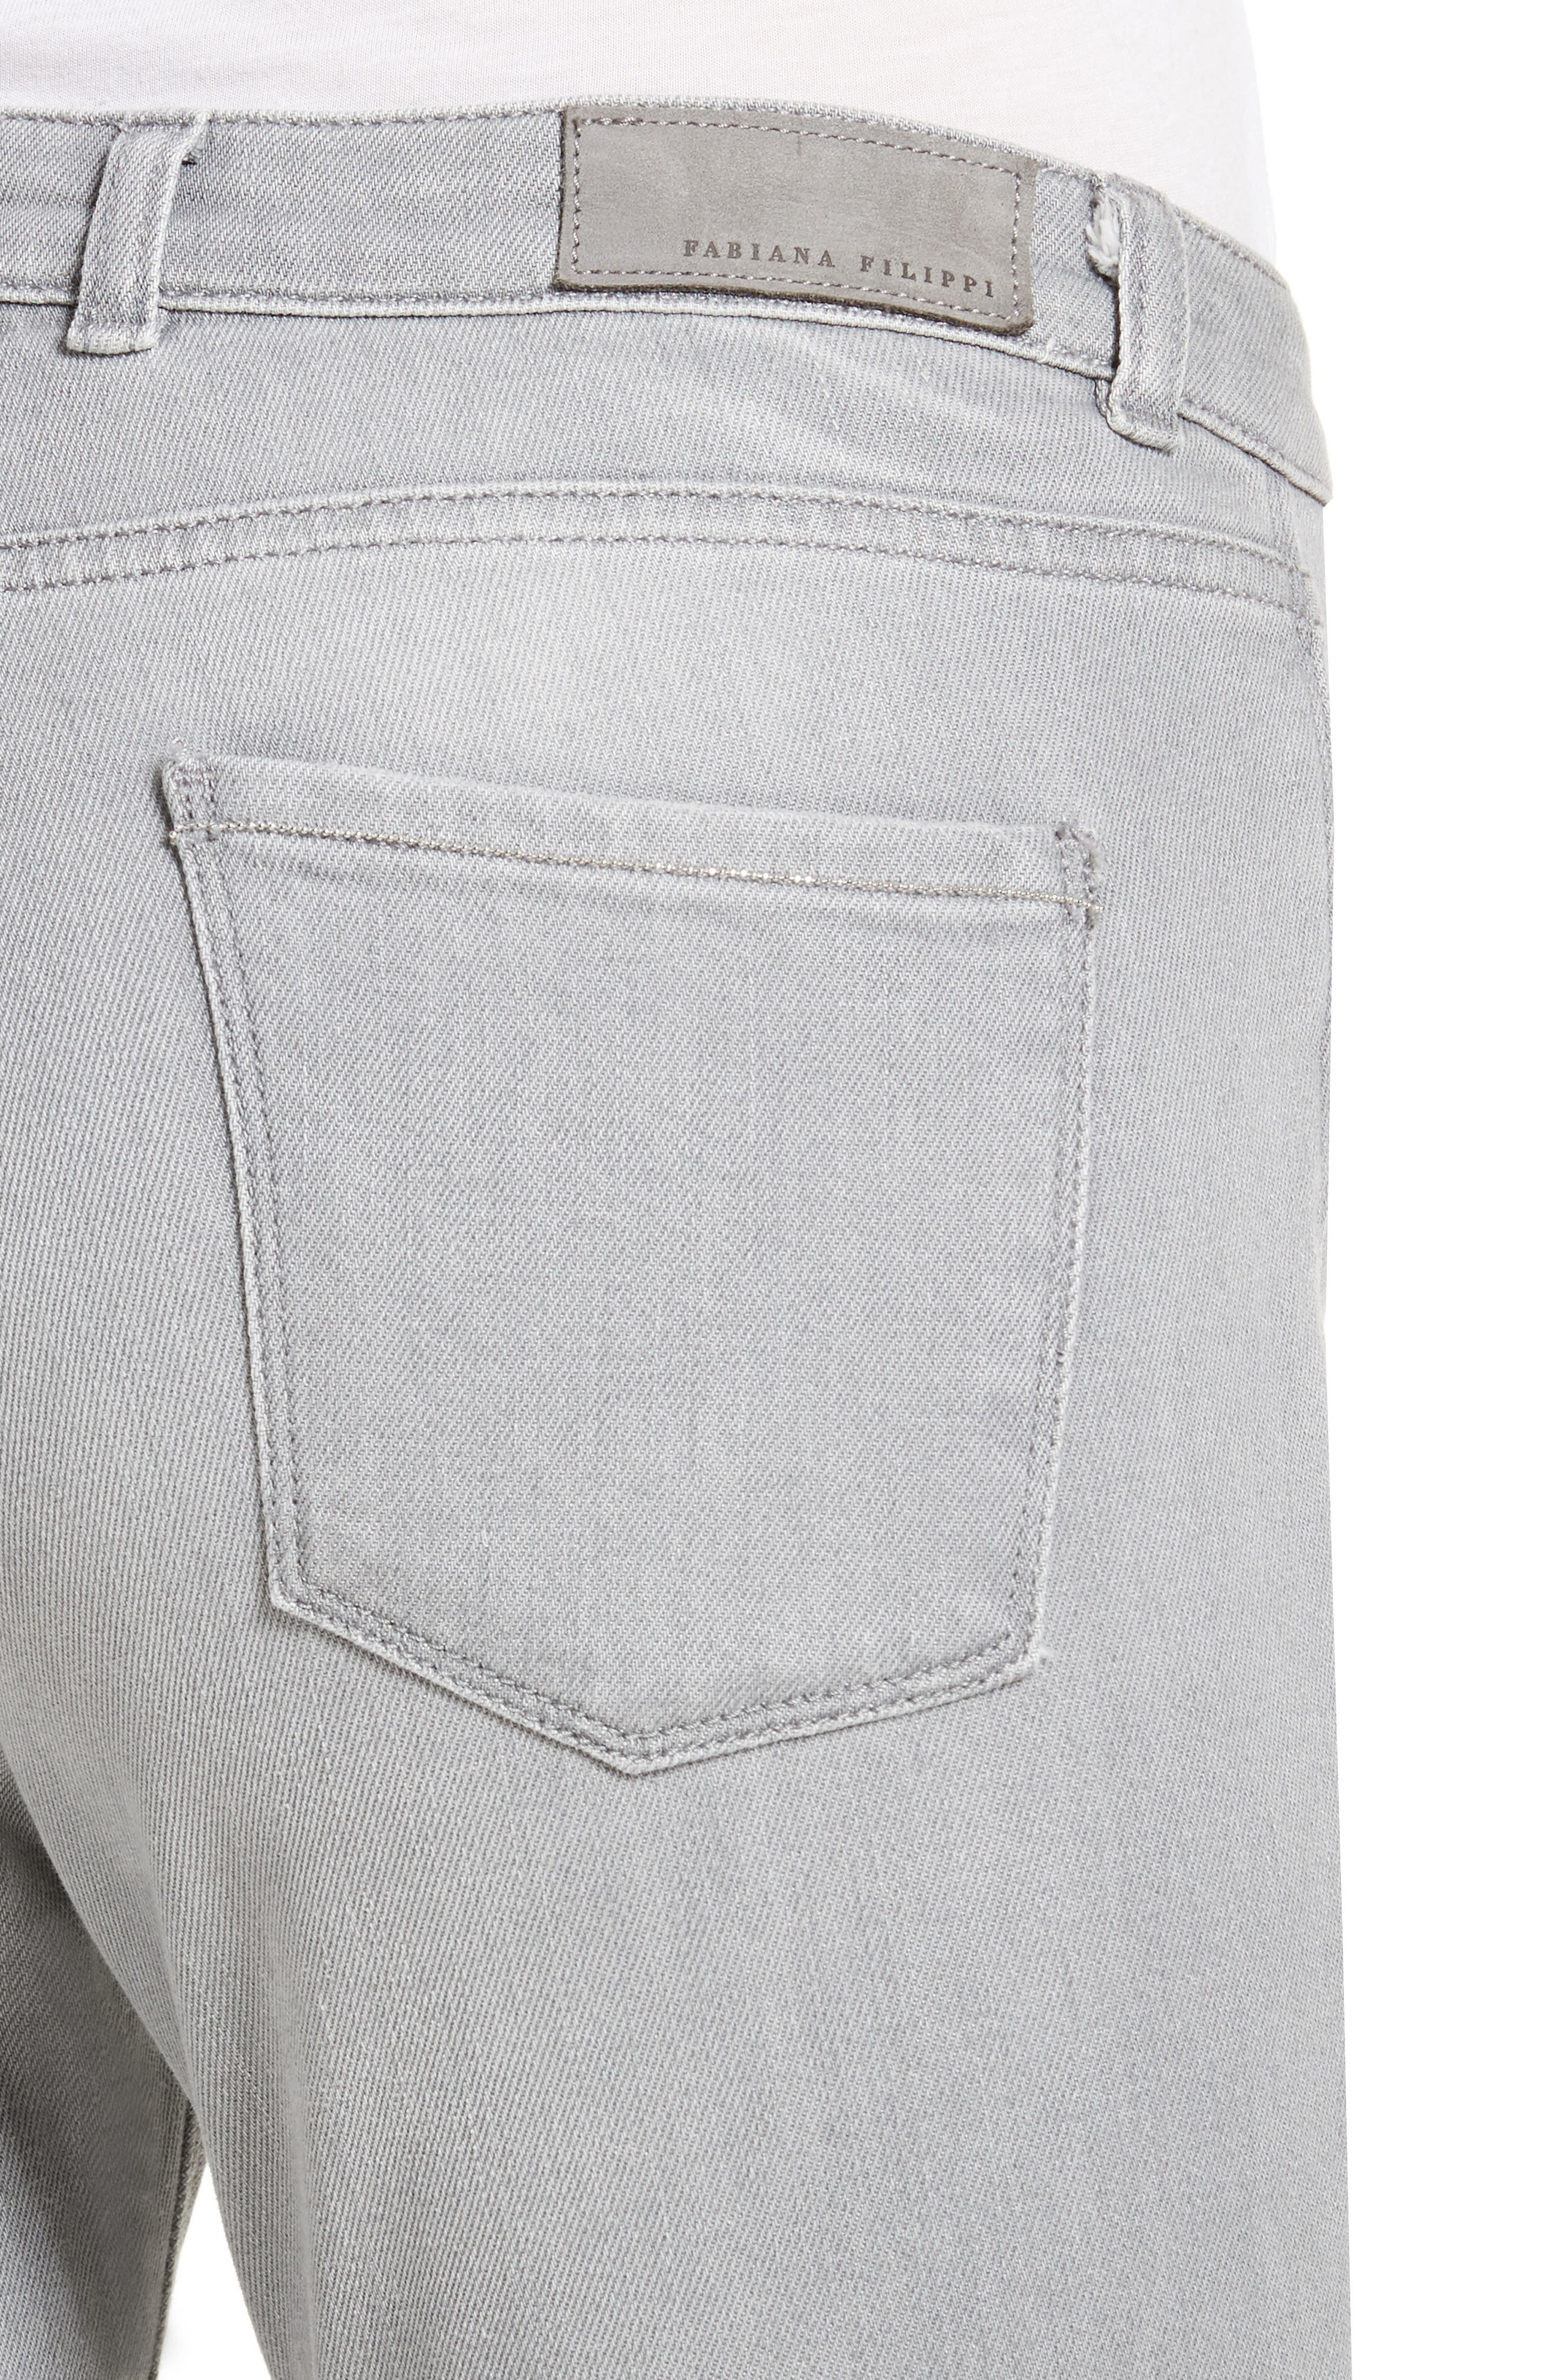 Stretch Skinny Jeans,                             Alternate thumbnail 4, color,                             020